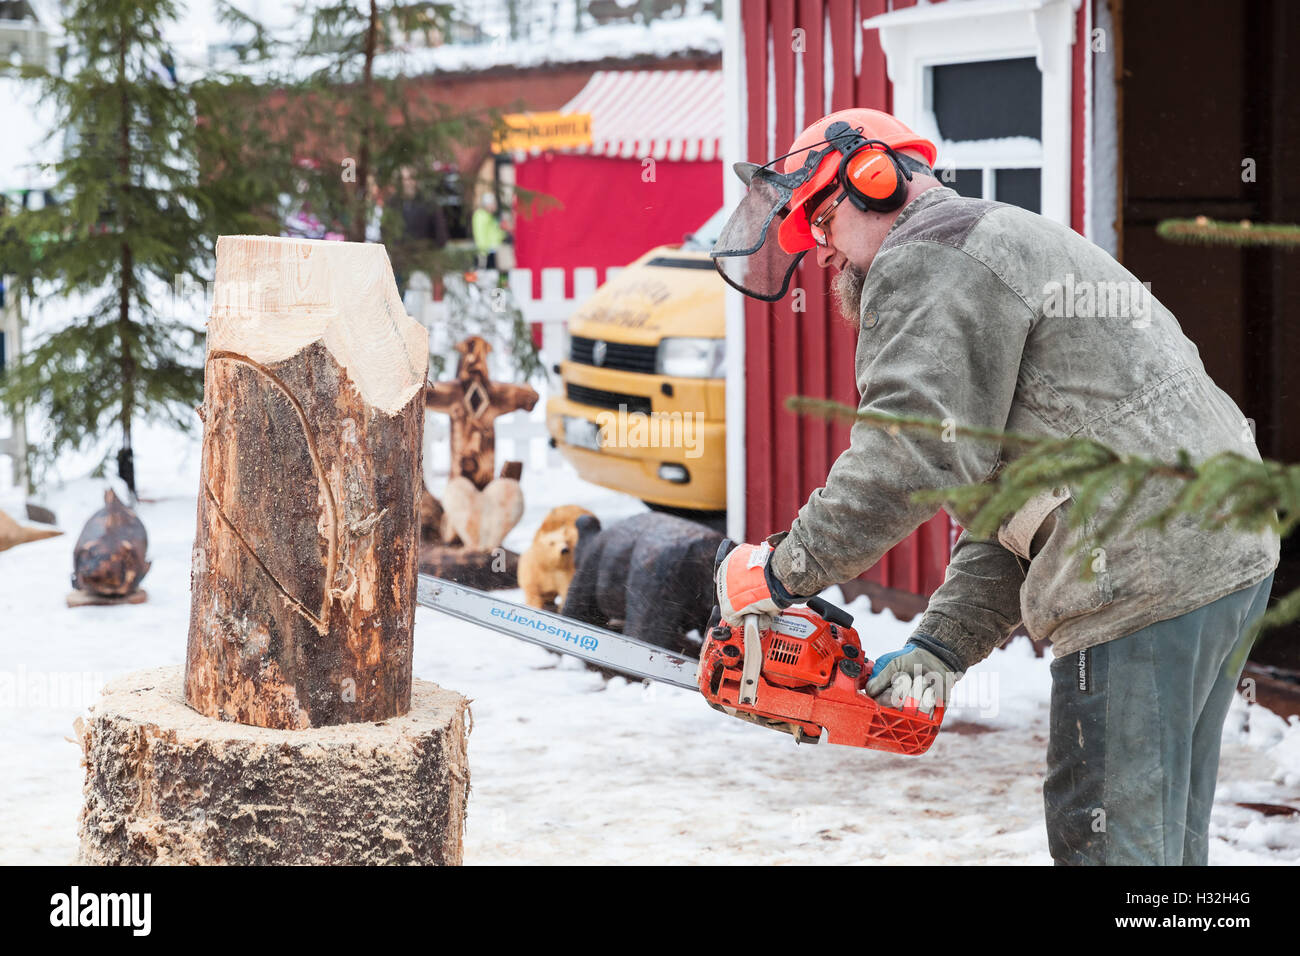 Hamina, Finland - December 13, 2014: Finnish master sculptor with a chainsaw produces rough wooden sculpture - Stock Image